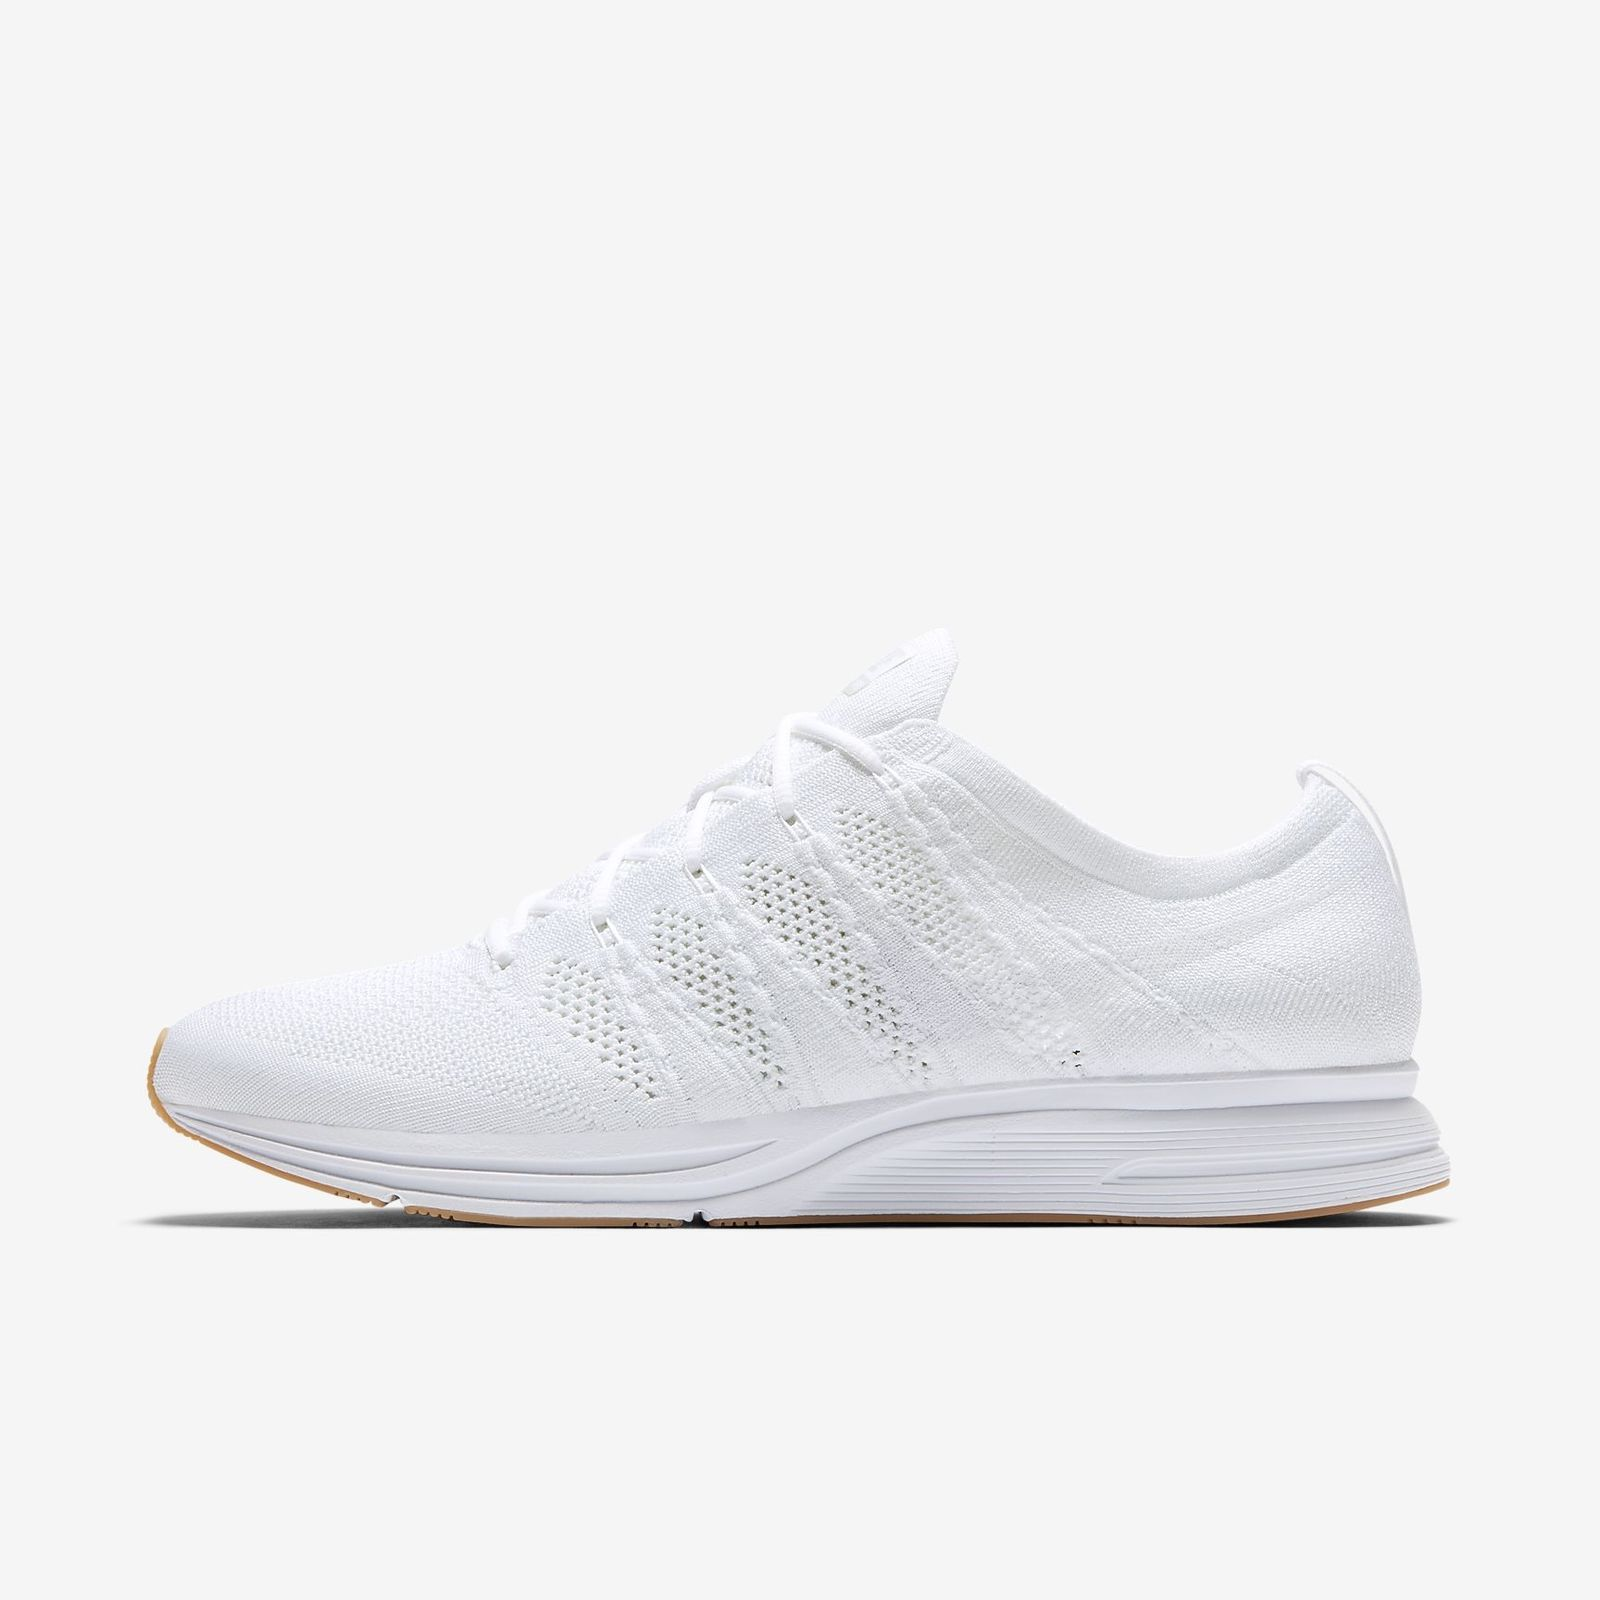 cb653e423a869 Details about NIKE FLYKNIT TRAINER AH8396-102 WHITE GUM LIGHT BROWN